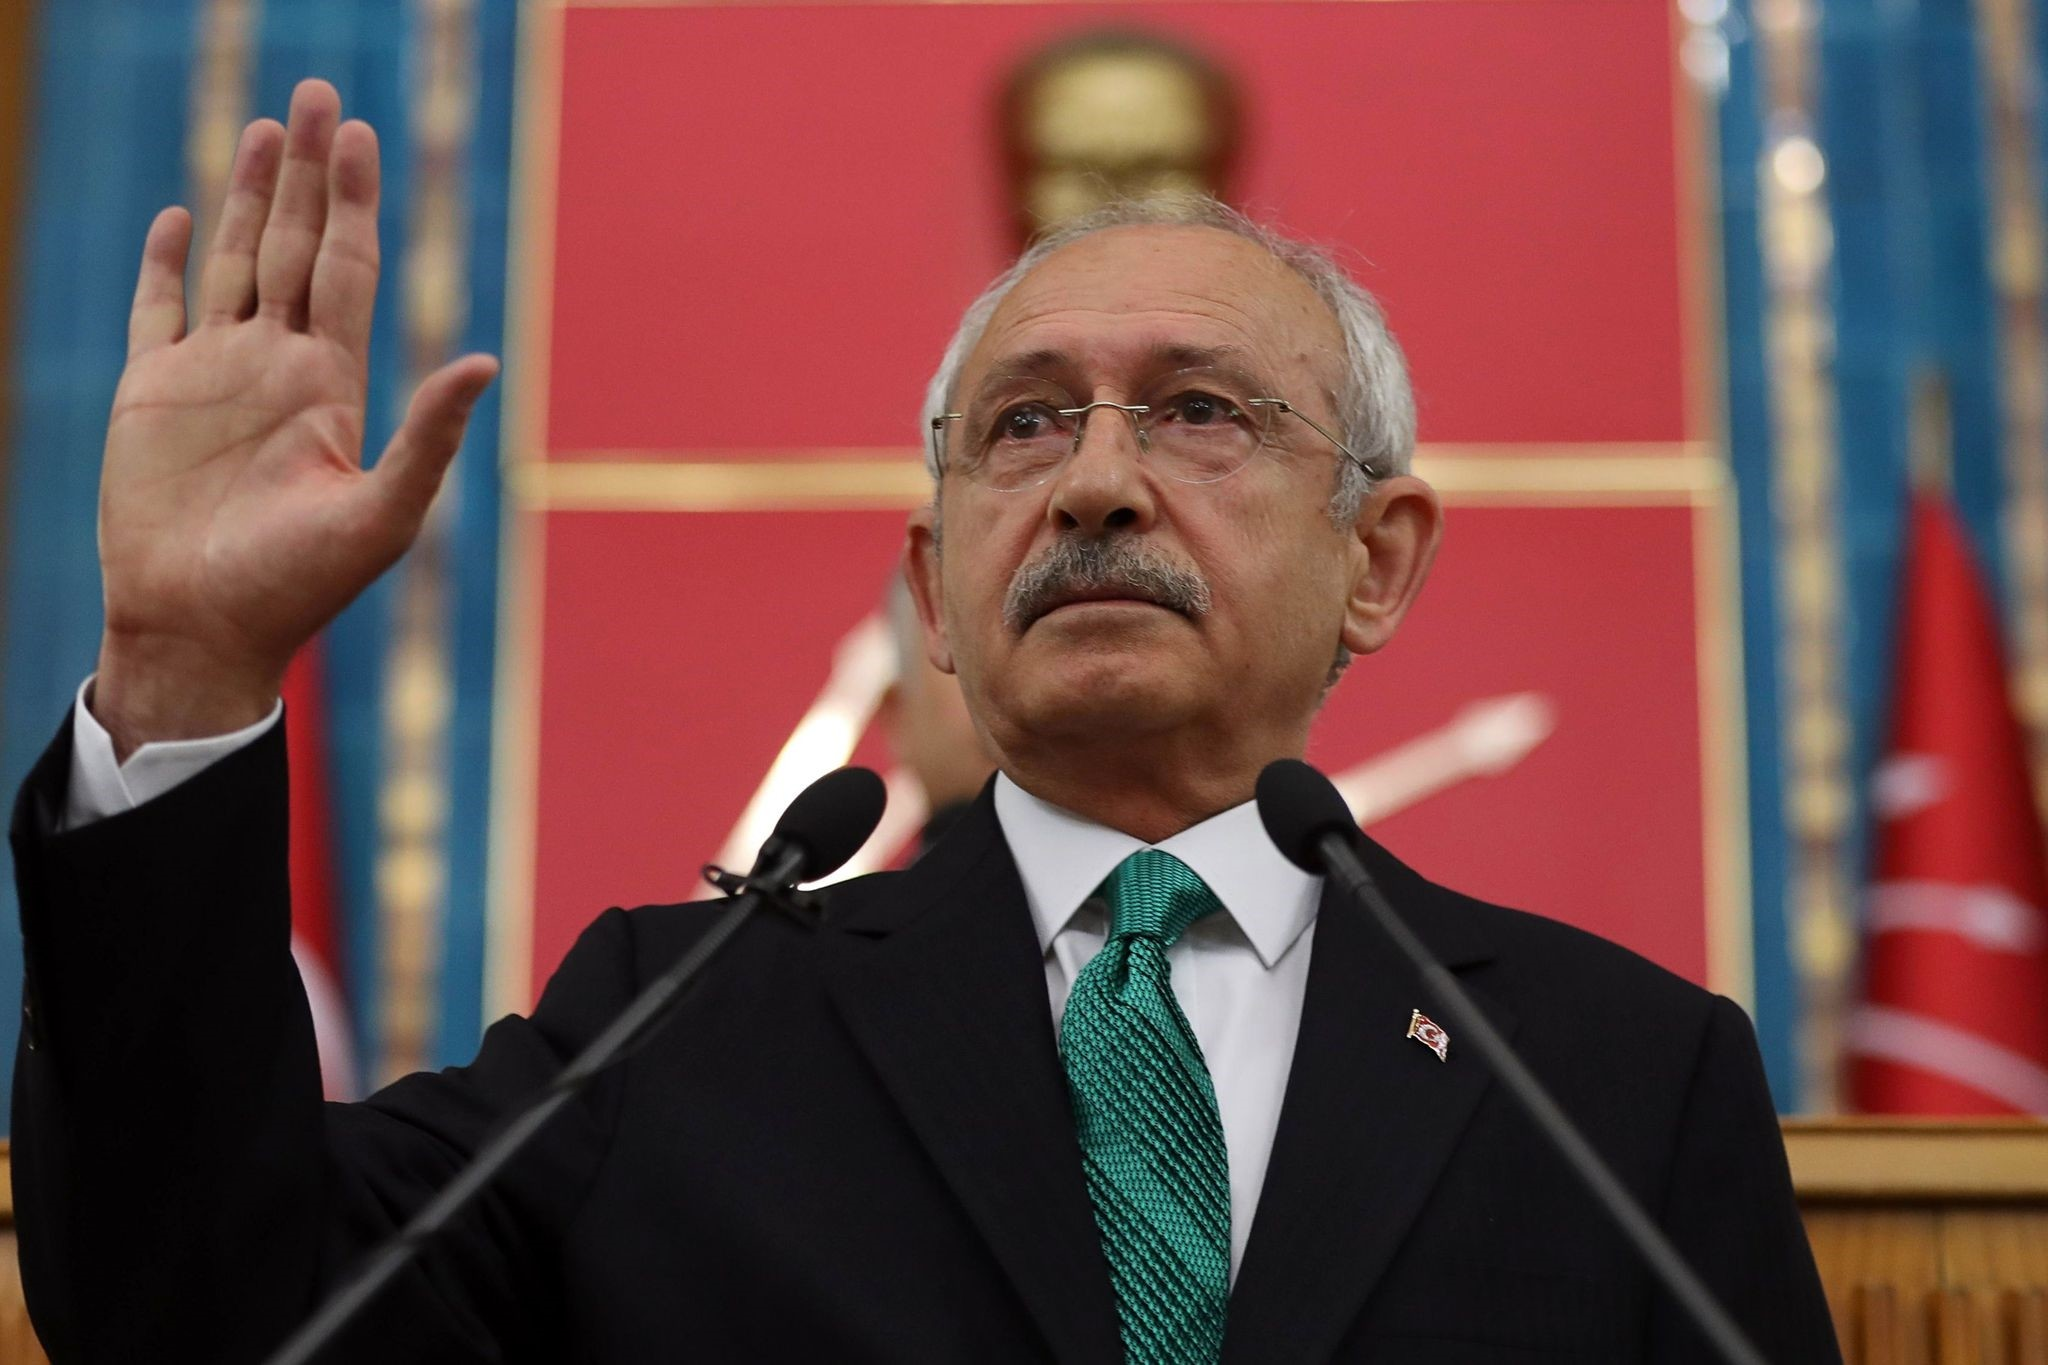 Kemal Ku0131lu0131u00e7darou011flu, leader of the CHP, gestures as he delivers a speech during a meeting at the Turkish parliament in Ankara, on April 18.